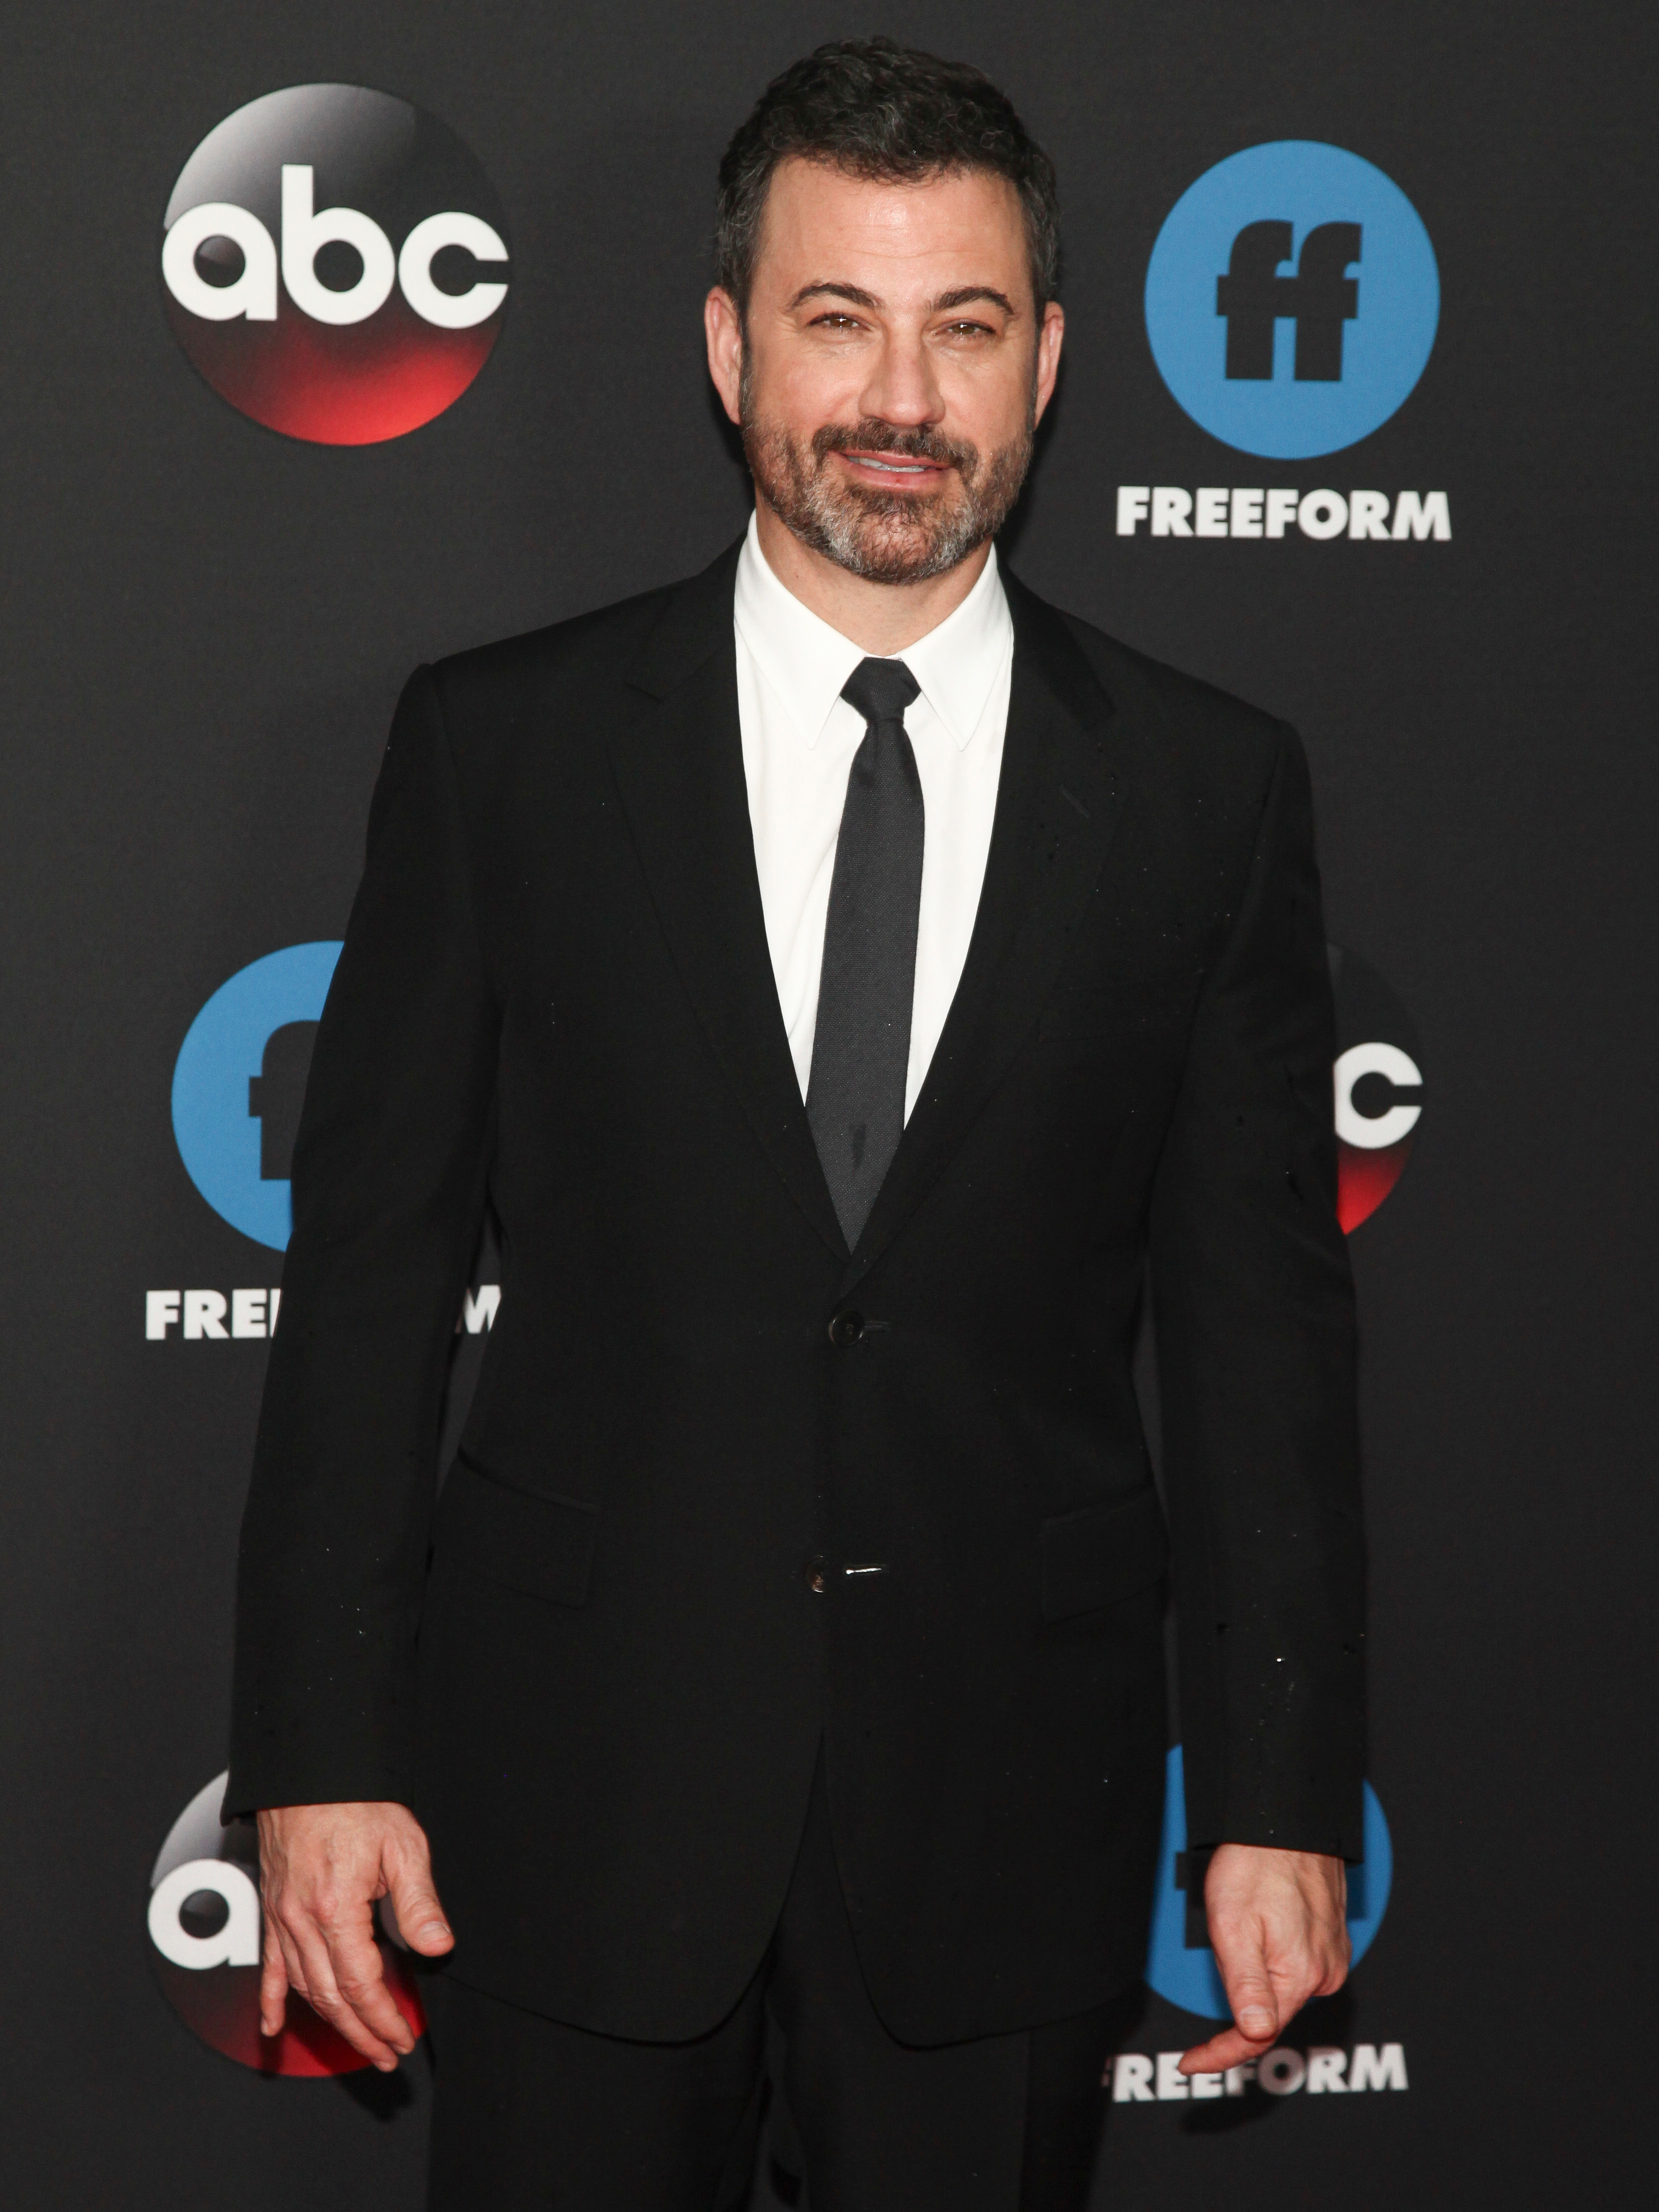 Jimmy Kimmel appears at the 2018 Disney/ABC/Freeform Upfront Red Carpet in New York City on May 15, 2018.